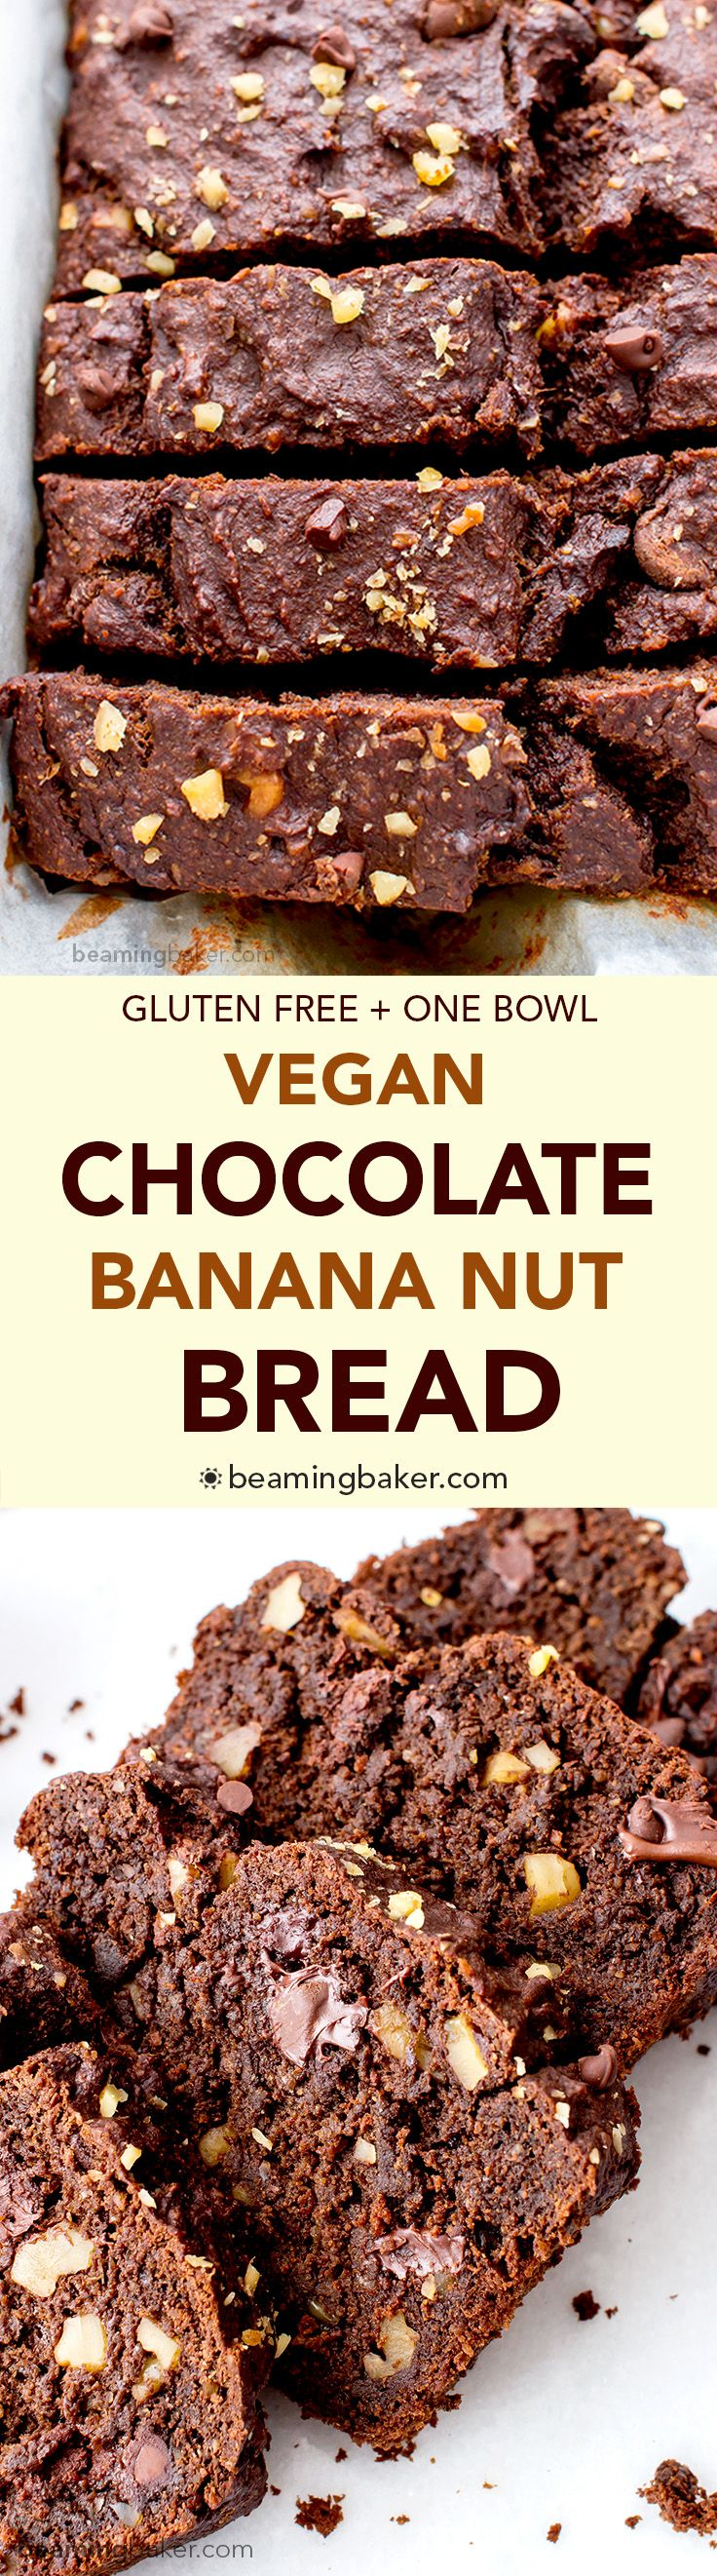 Vegan Chocolate Banana Nut Bread (V+GF): A one bowl recipe for rich, moist and chocolatey banana bread with walnuts. #Vegan #GlutenFree | BeamingBaker.com